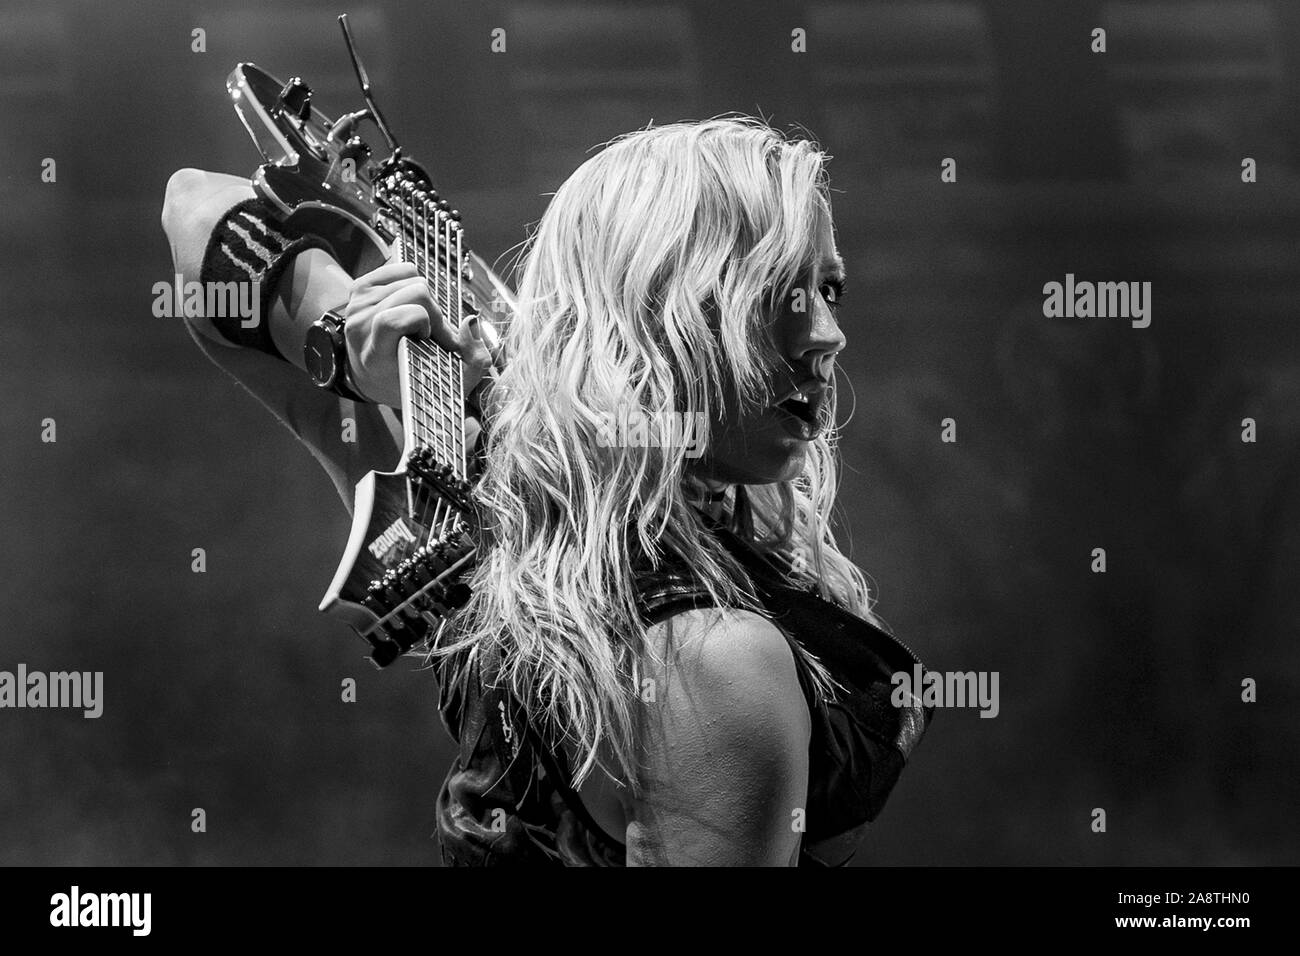 LONDON, ENGLAND: Alice Cooper performs at The O2 Arena Featuring: Nita Strauss Where: London, United Kingdom When: 10 Oct 2019 Credit: Neil Lupin/WENN Stock Photo